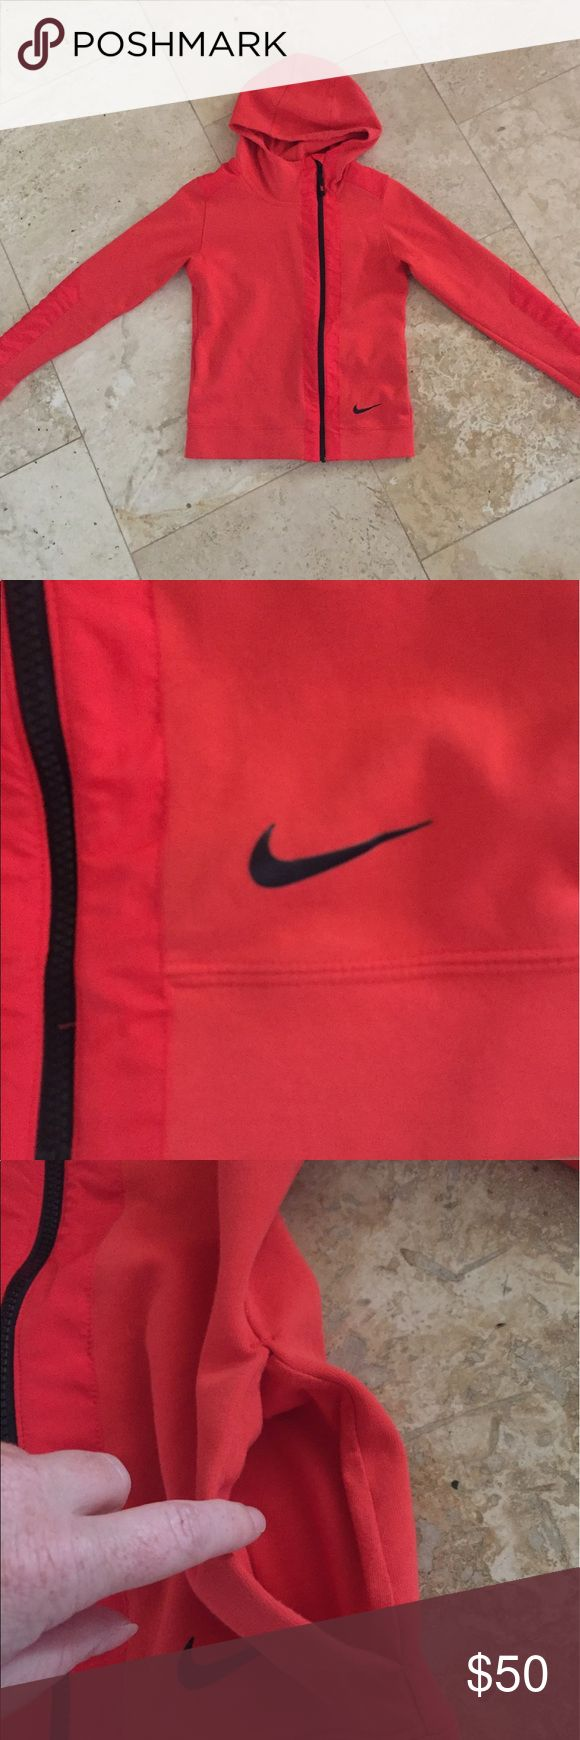 Nike hoodie Red Nike hoodie with pockets. Zips high up the neck. It is too small for me- was a gift. No tags but never worn. Nike Jackets & Coats